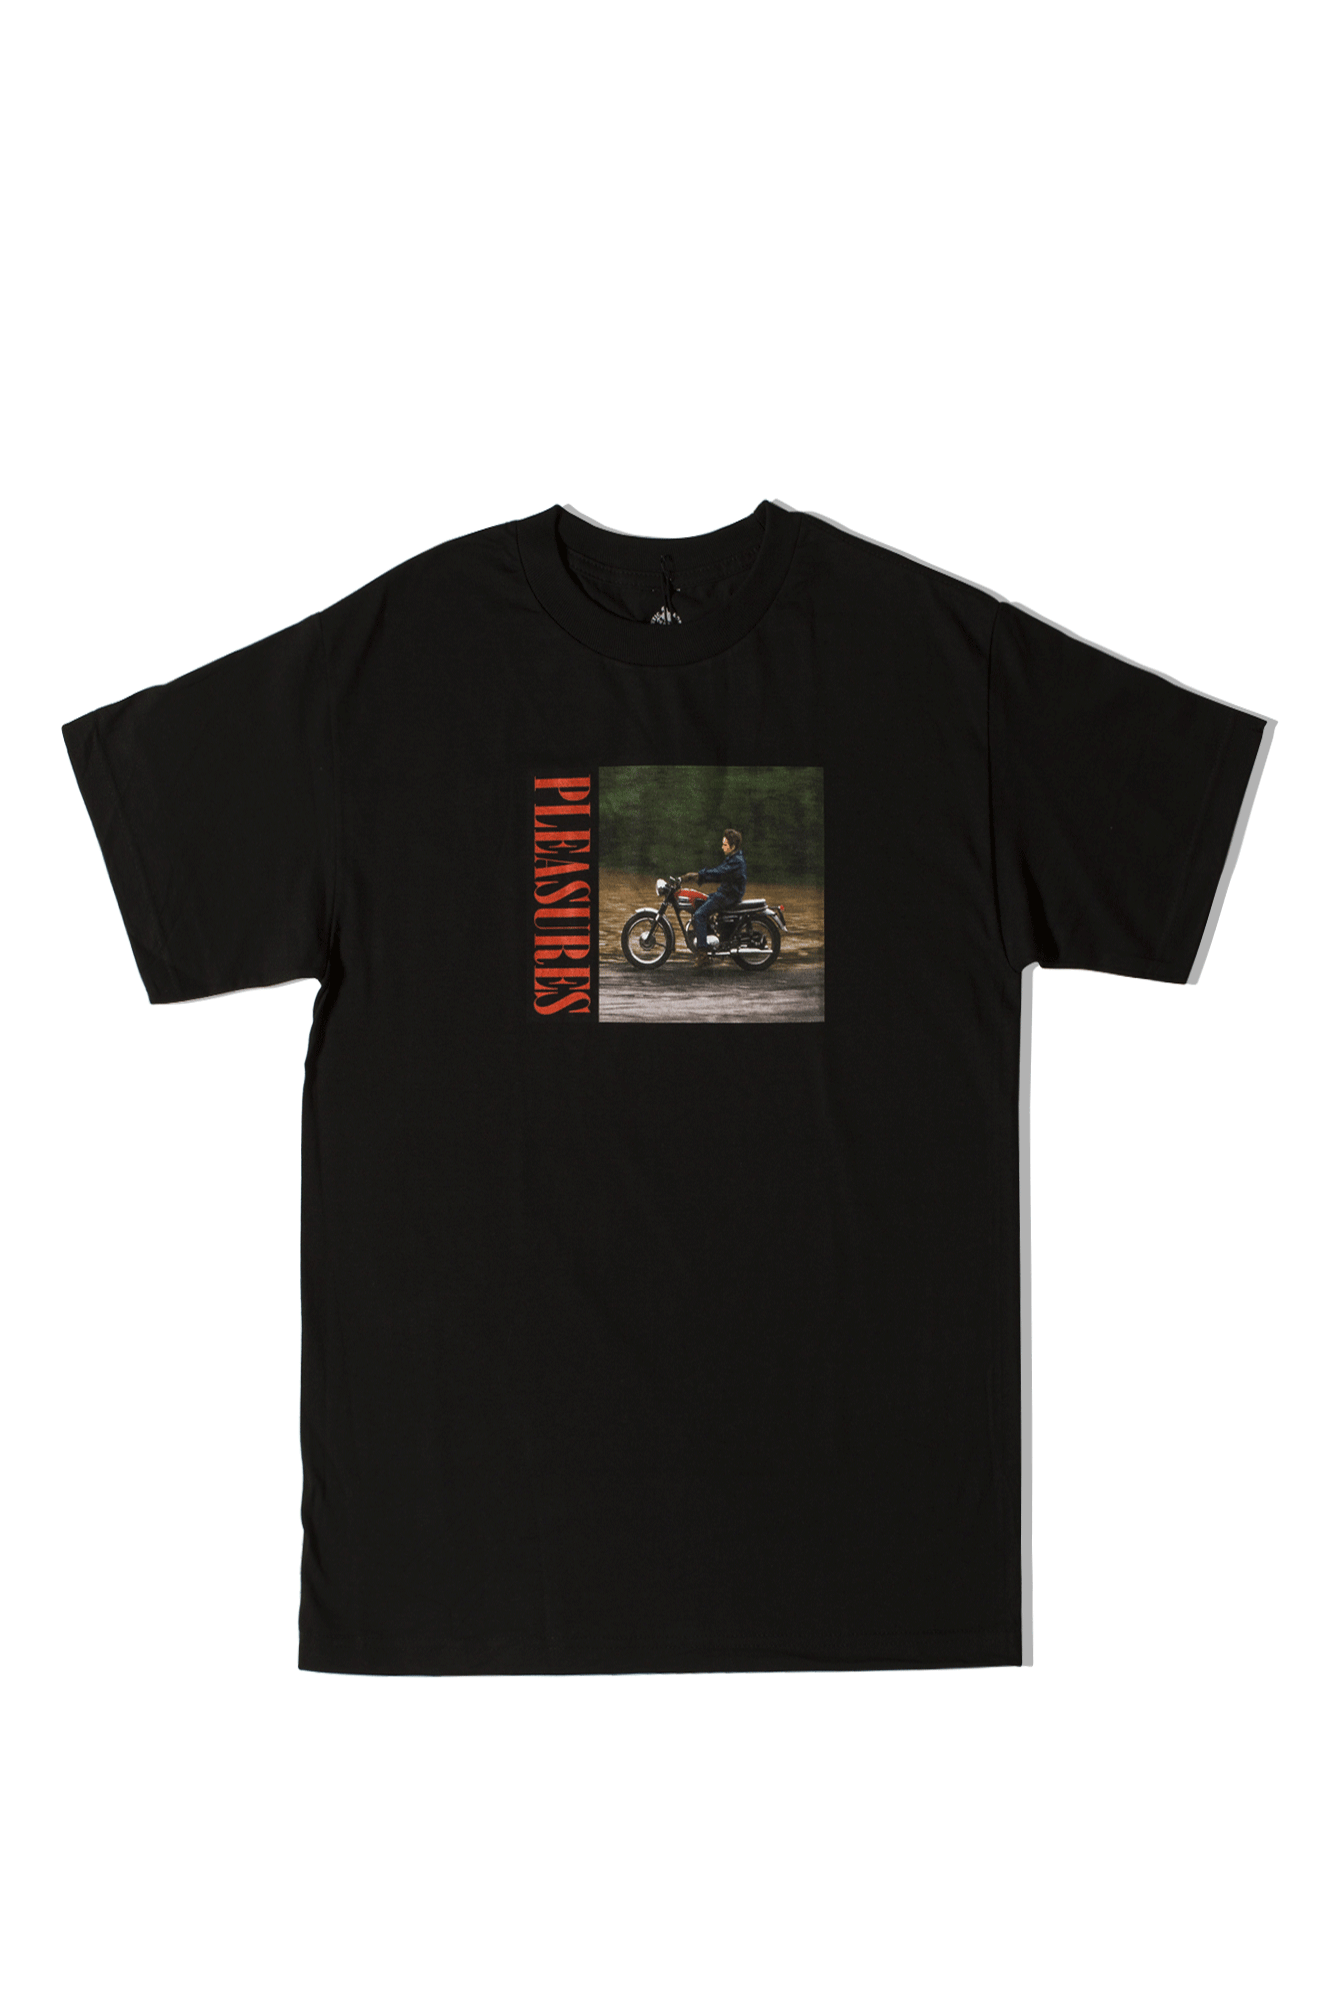 Bob Dylan Ride T-Shirt Black